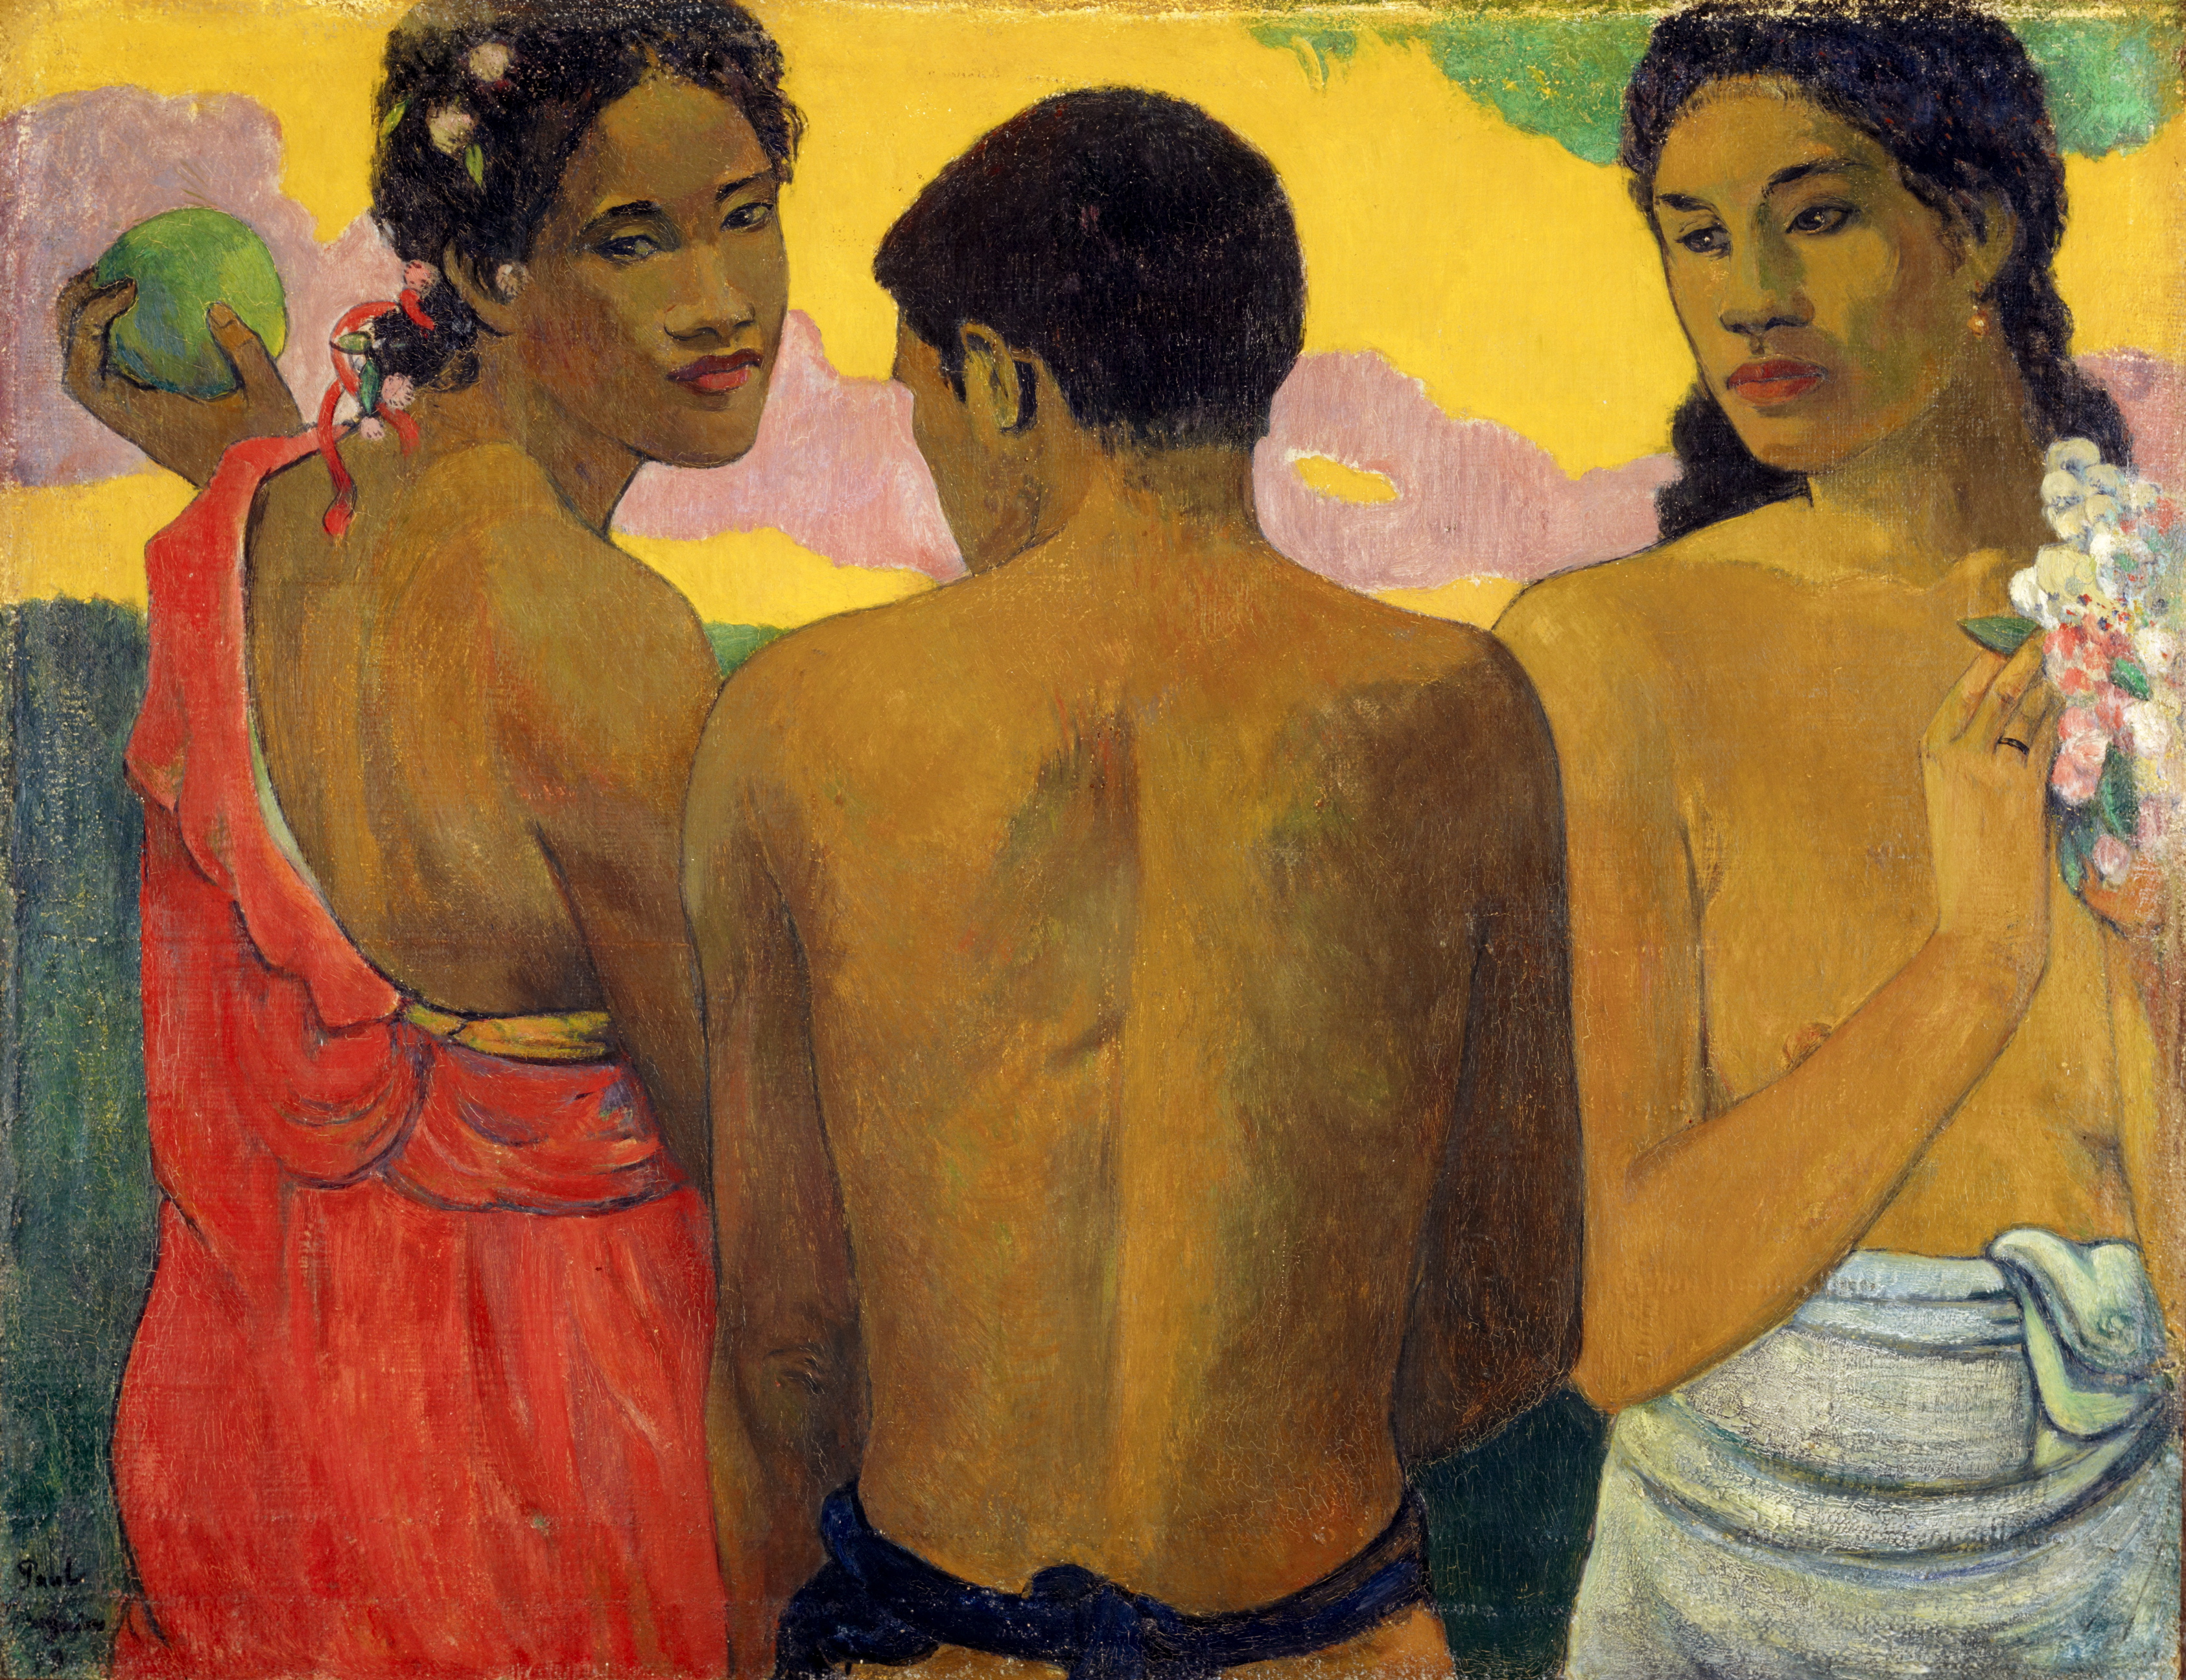 Paul Gauguin Three Tahitians 1899 oil on canvas 73 x 94 cm Scottish National Gallery, Edinburgh © Trustees of the National Galleries of Scotland ***This image may only be used in conjunction with editorial coverage of The Greats exhibition, 24 Oct 2015 - 14 Feb 2016, at the Art Gallery of New South Wales. This image may not be cropped or overwritten. Prior approval in writing required for use as a cover. Caption details must accompany reproduction of the image. *** Media contact: Lisa.Catt@ag.nsw.gov.au *** Local Caption *** ***This image may only be used in conjunction with editorial coverage of The Greats exhibition, 24 Oct 2015 - 14 Feb 2016, at the Art Gallery of New South Wales. This image may not be cropped or overwritten. Prior approval in writing required for use as a cover. Caption details must accompany reproduction of the image. *** Media contact: Lisa.Catt@ag.nsw.gov.au